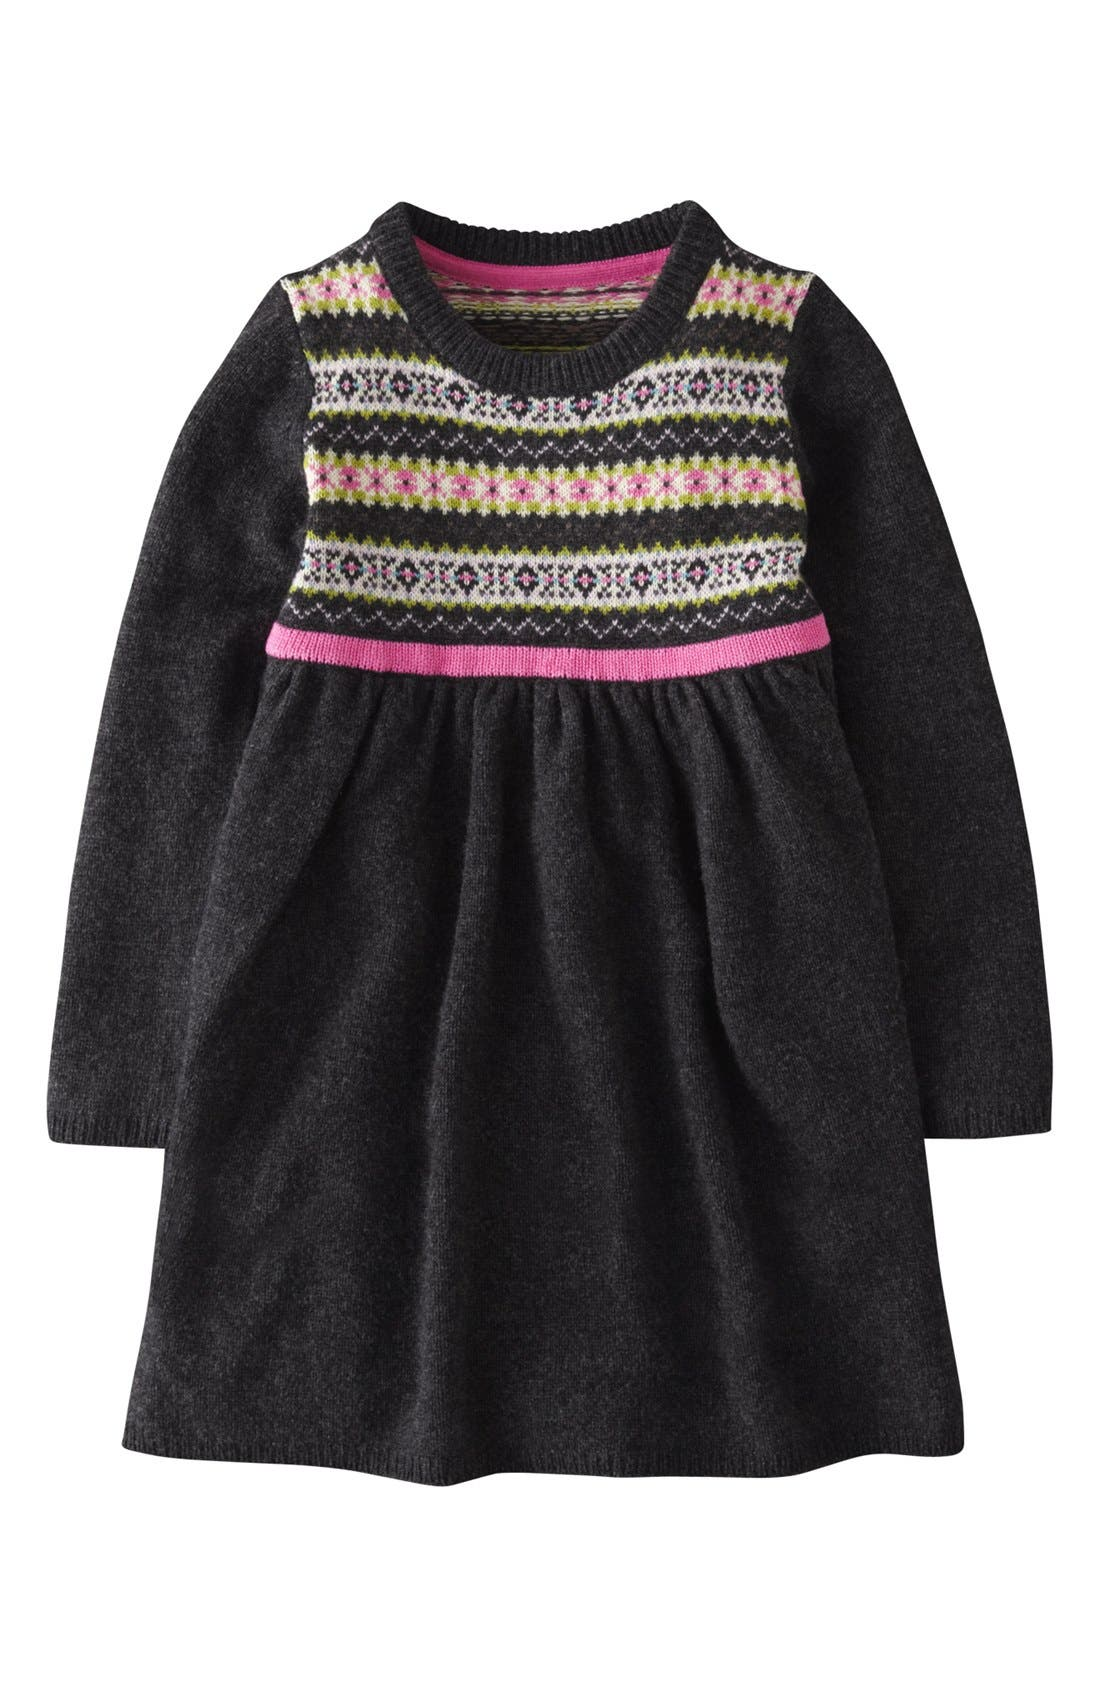 MINI BODEN,                             Fair Isle Knit Dress,                             Main thumbnail 1, color,                             024